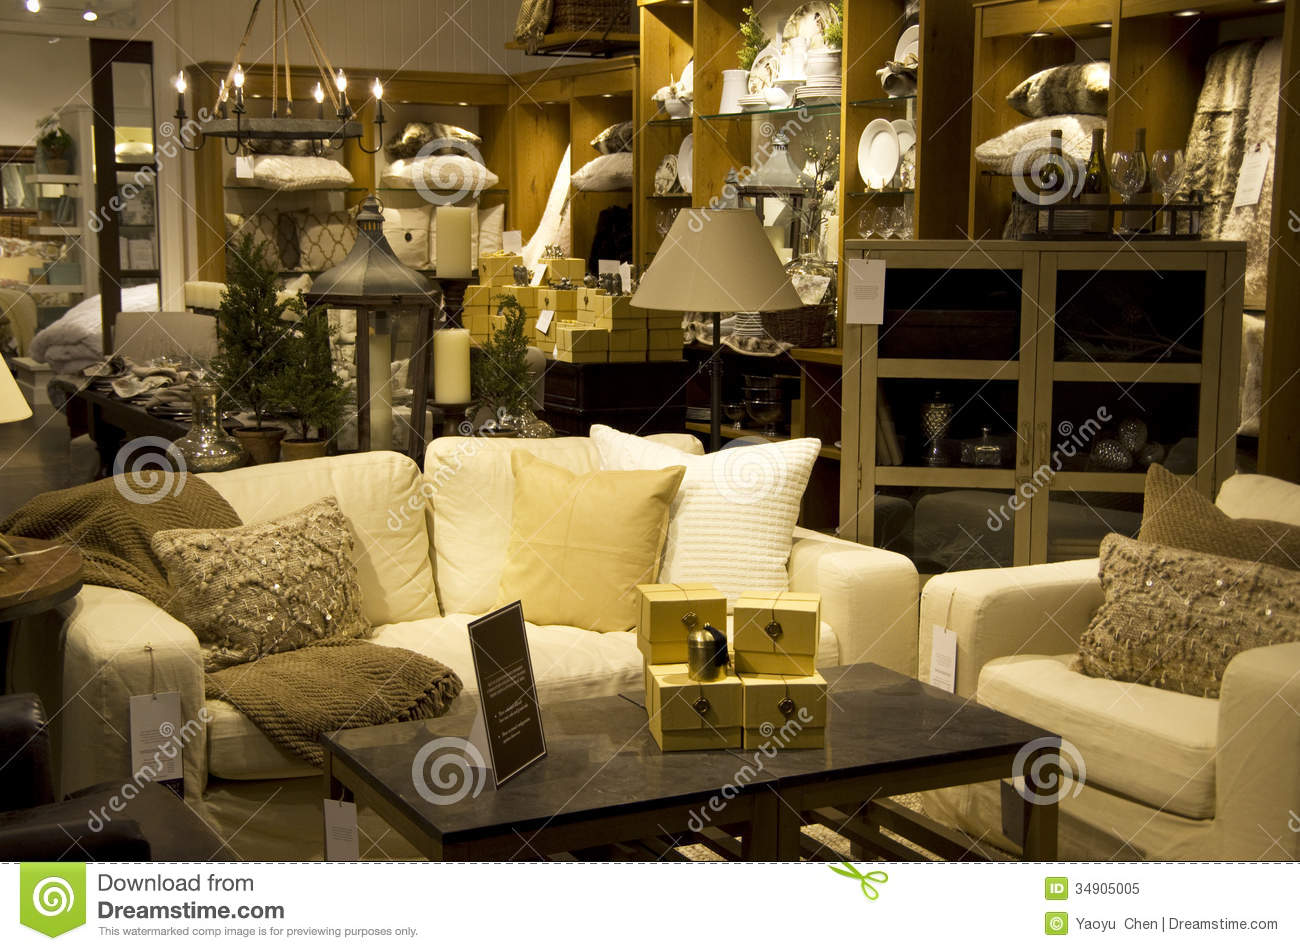 Luxury furniture home decor store royalty free stock photo for Home decor furniture stores